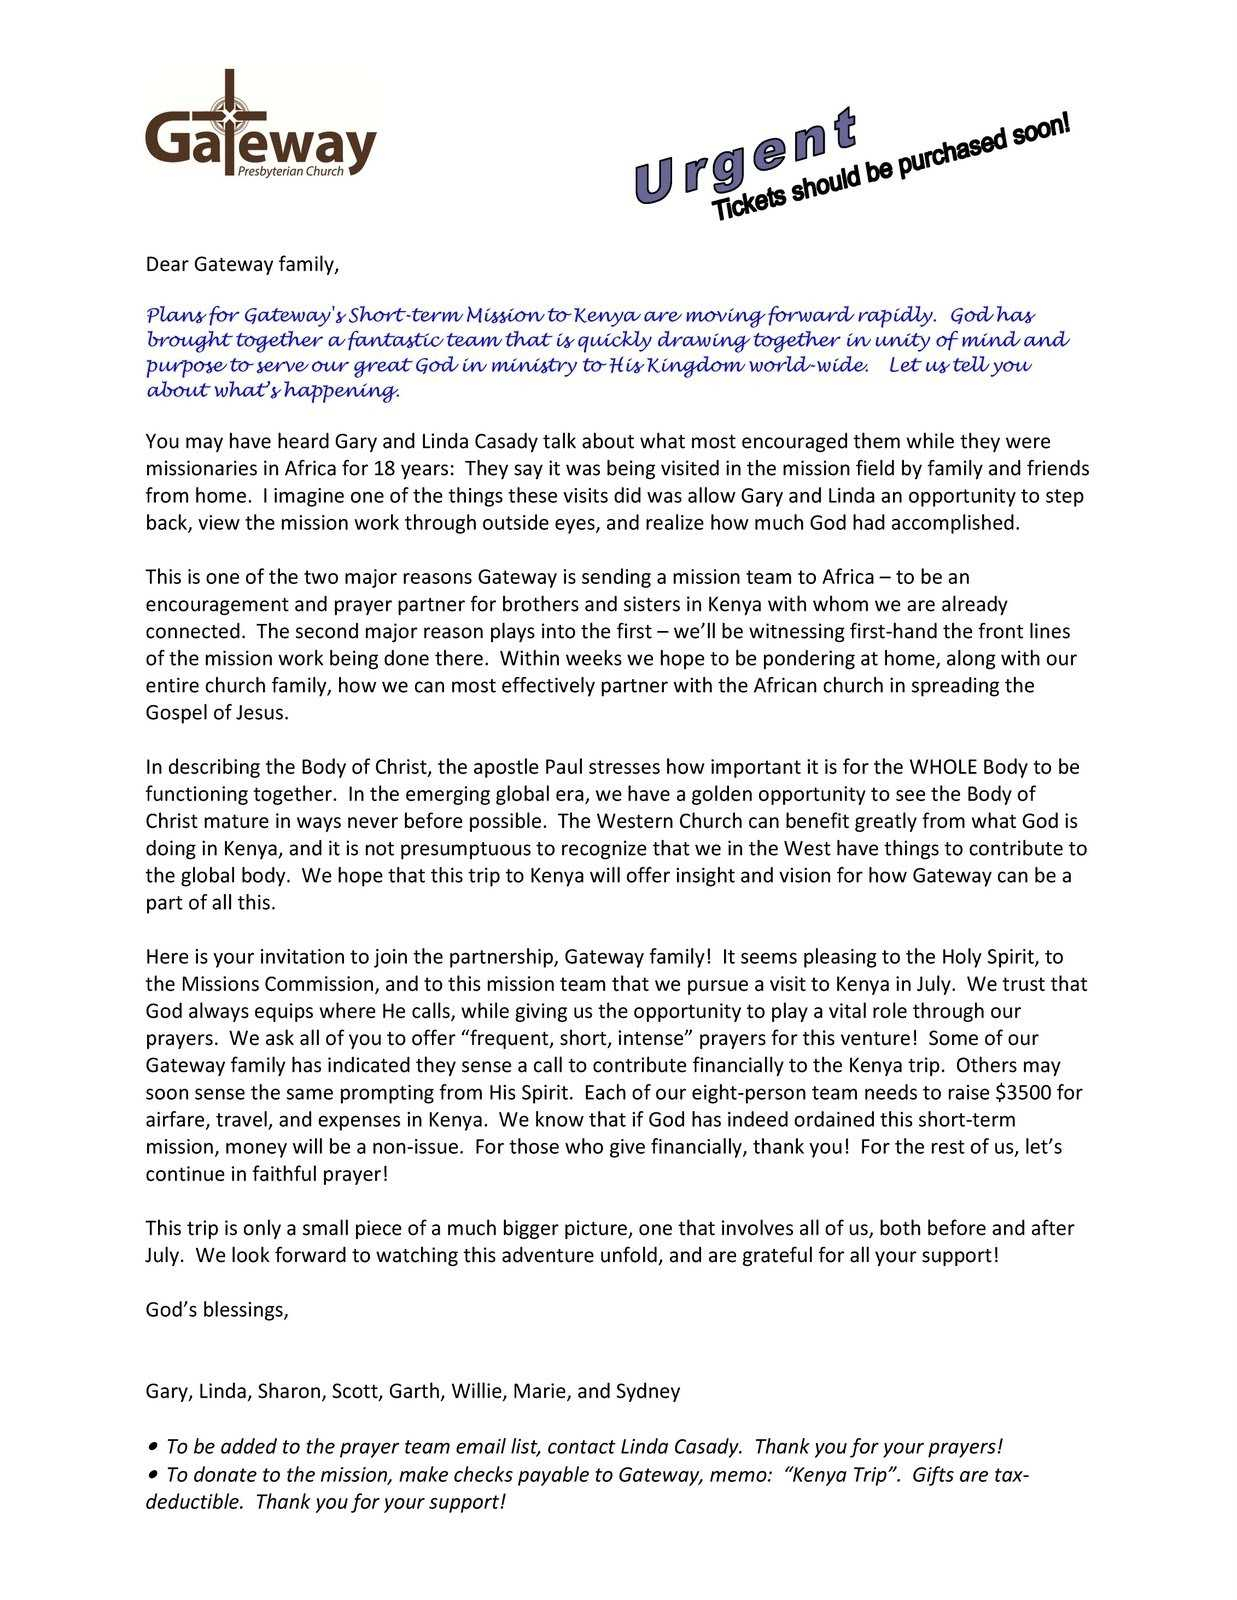 Mission Trip Letter Template - Early Childhood Philosophy Statement Examples Along with Mission